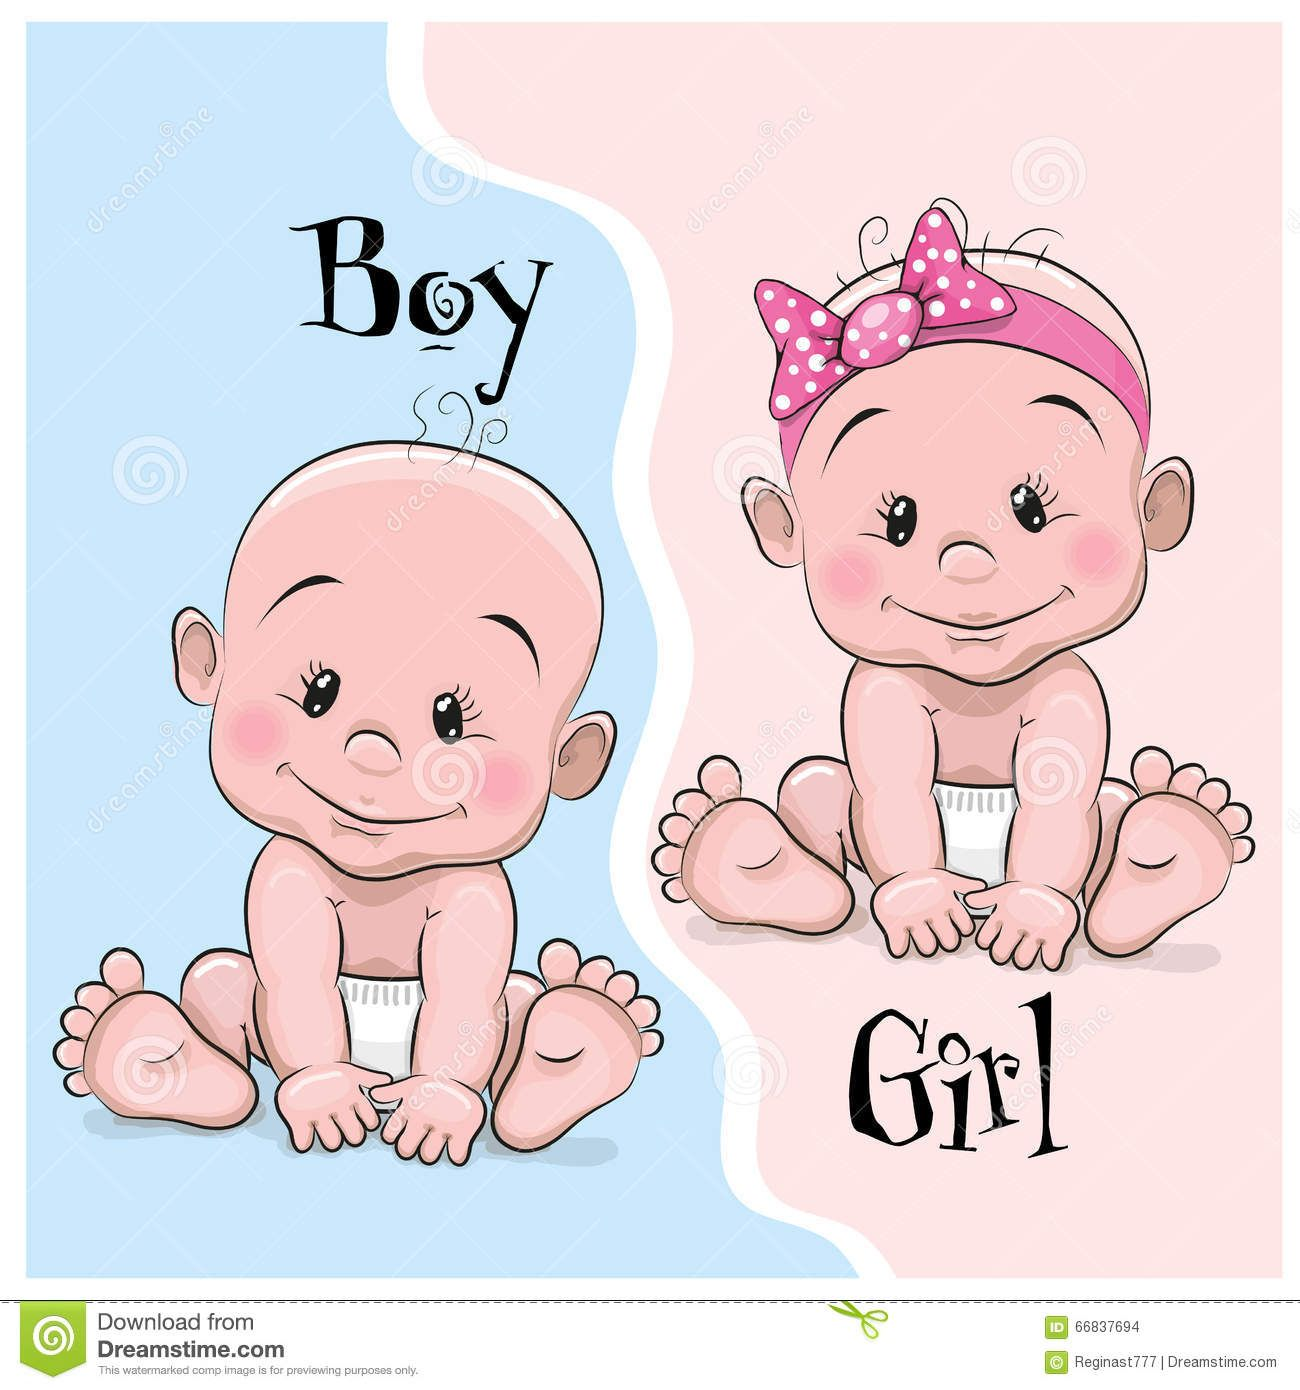 Baby Boy And Girl - Download From Over 51 Million High ...